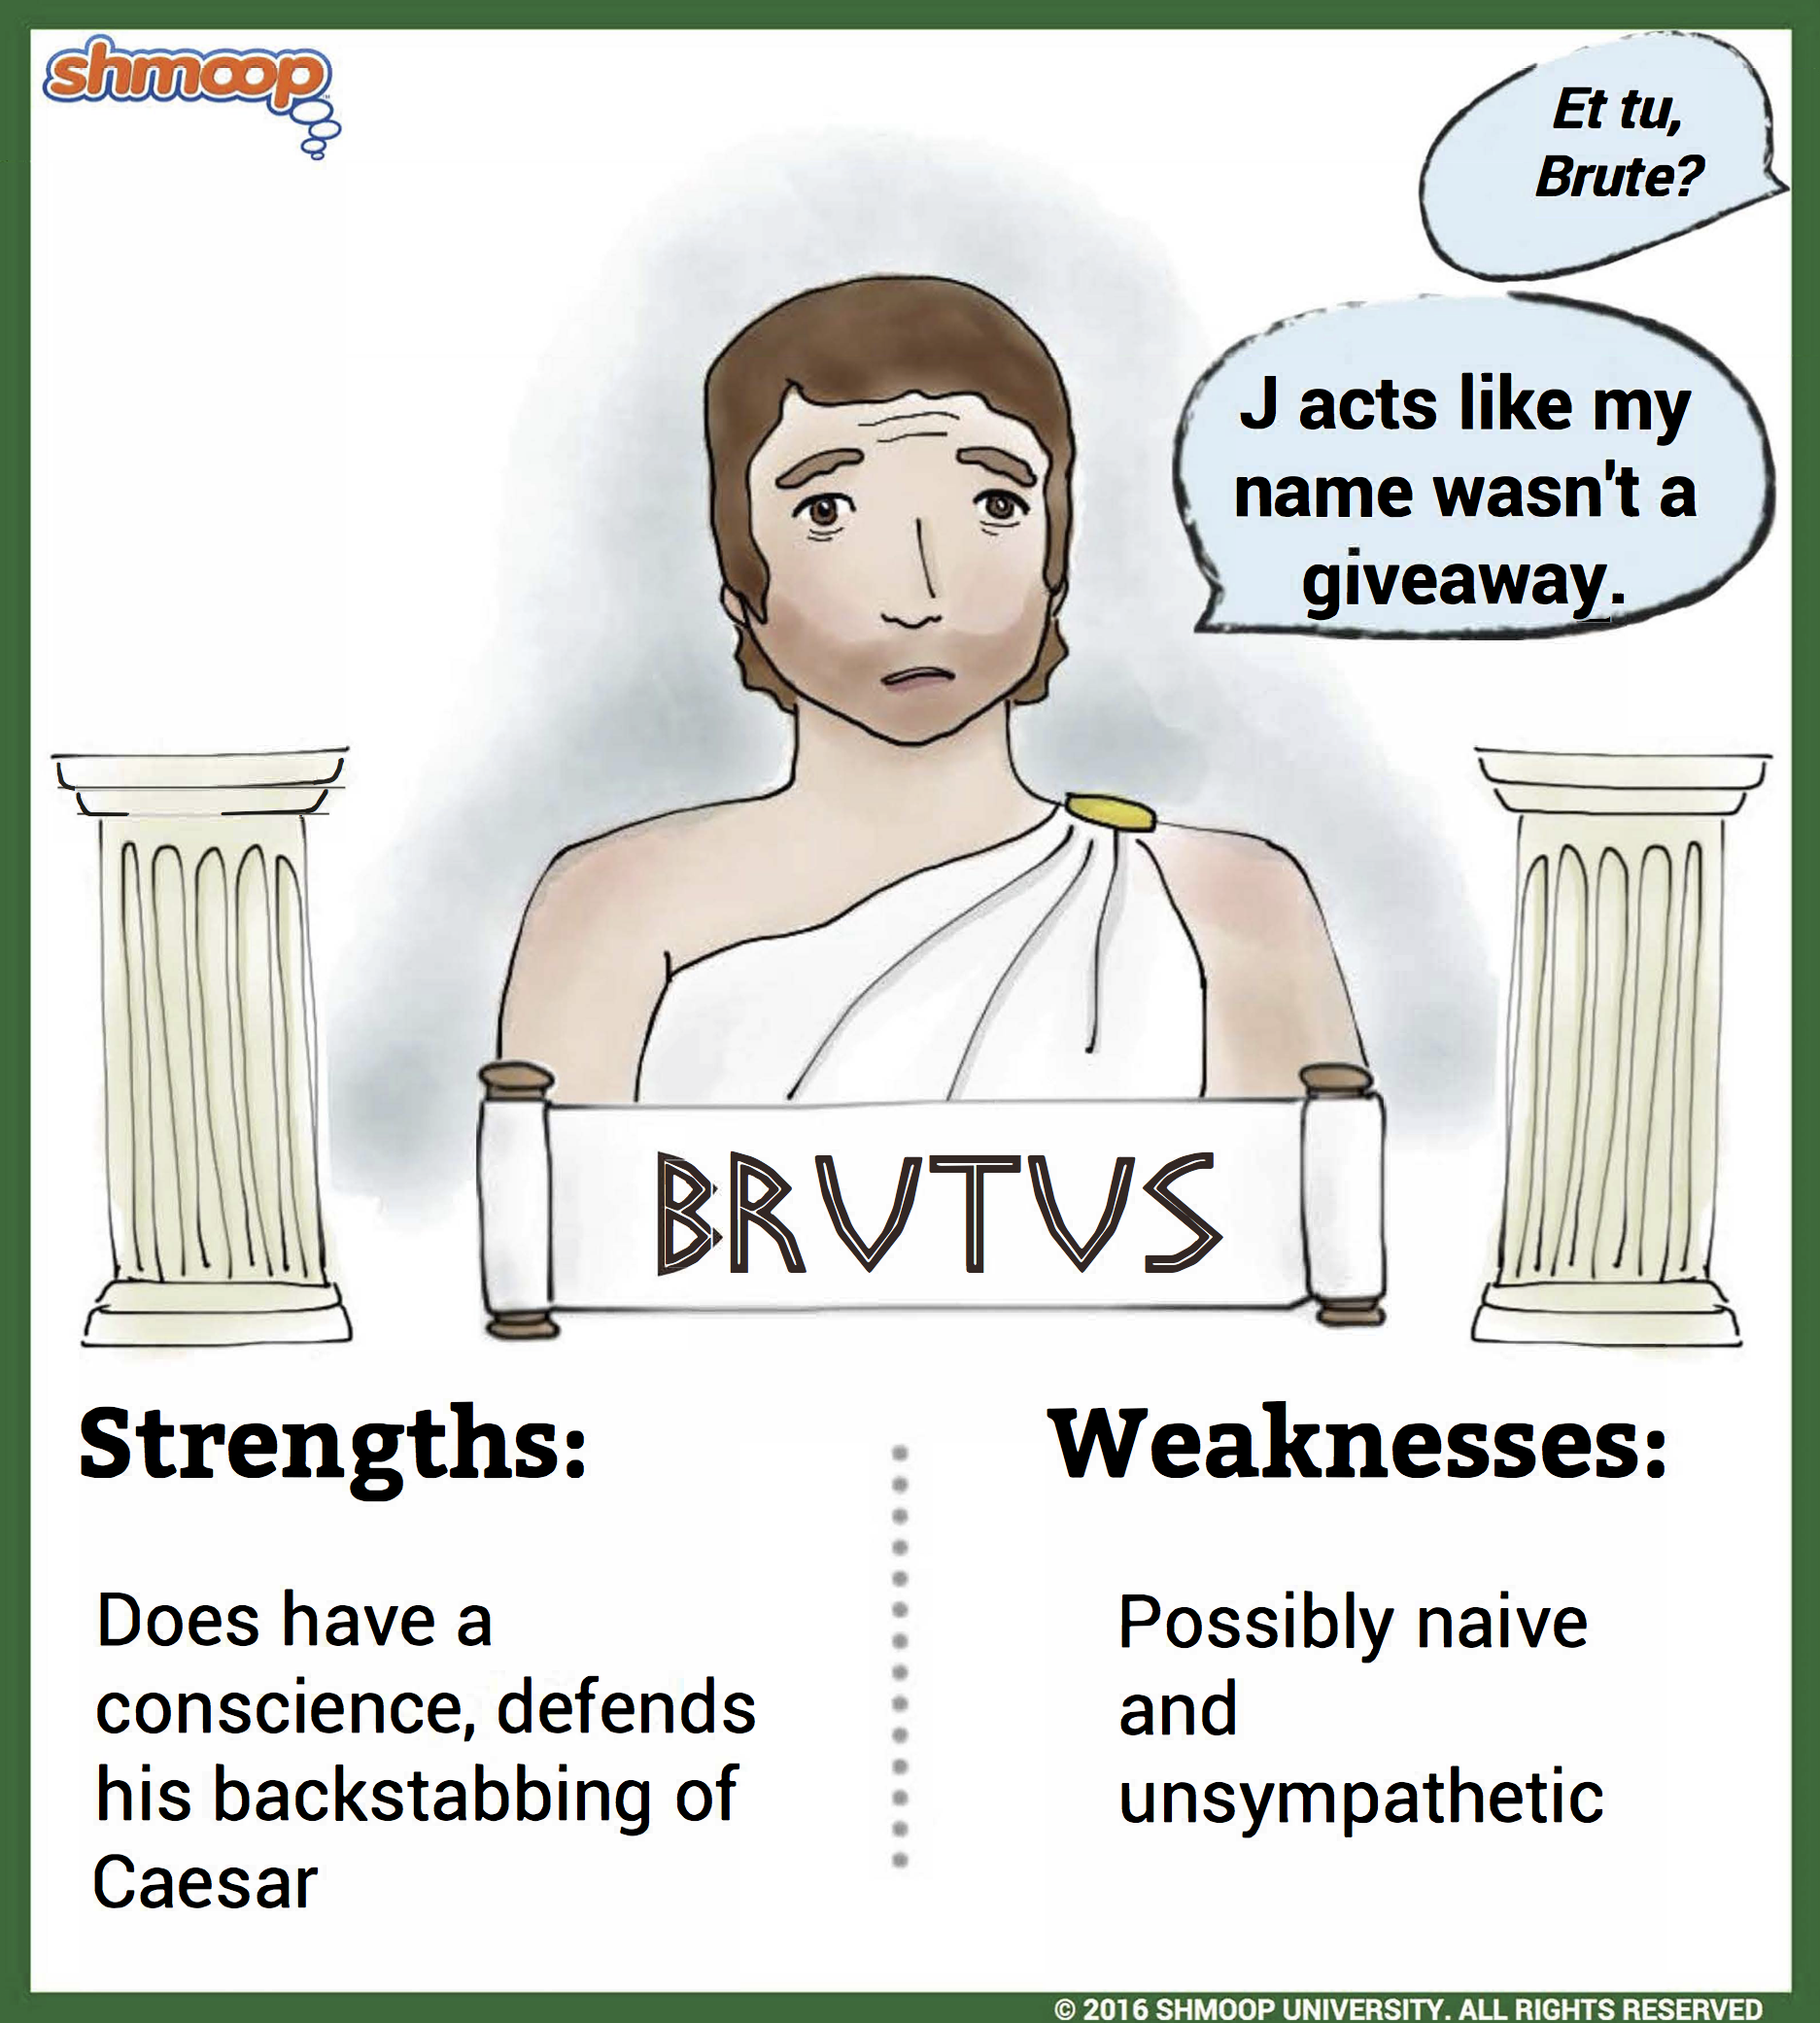 brutus in julius caesar character analysis